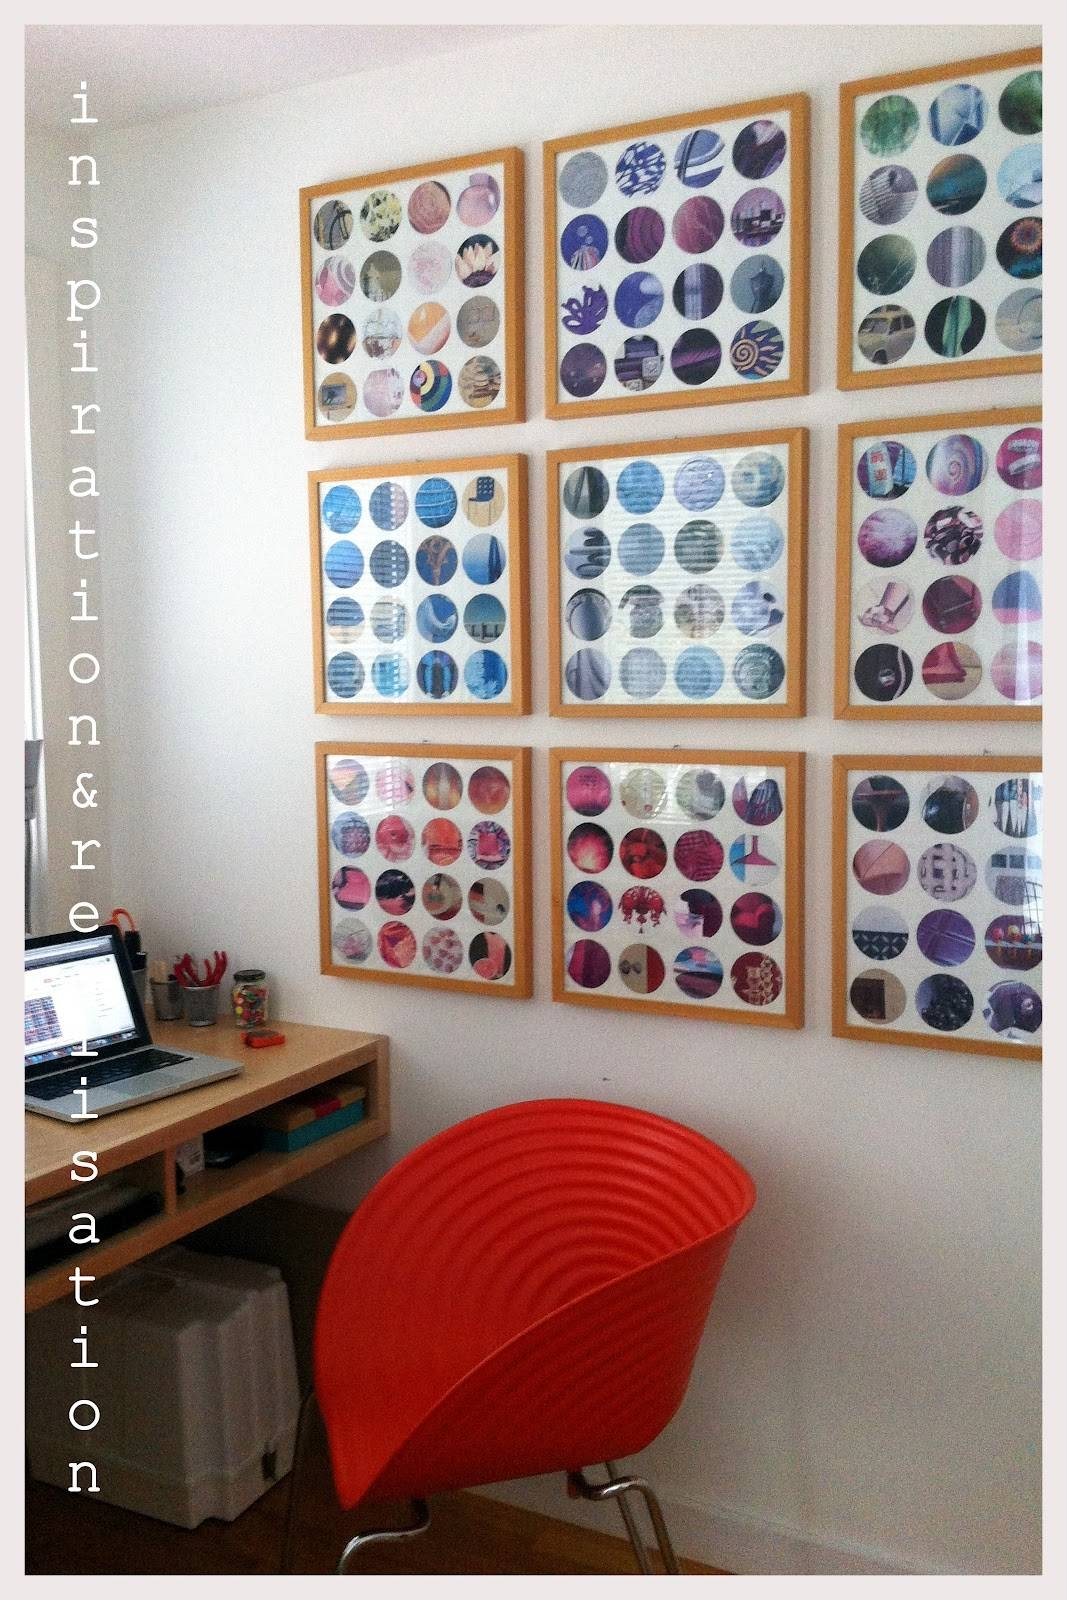 Inspiration And Realisation: Diy Fashion Blog: Diy Recycled Within Most Up To Date Recycled Wall Art (Gallery 9 of 30)